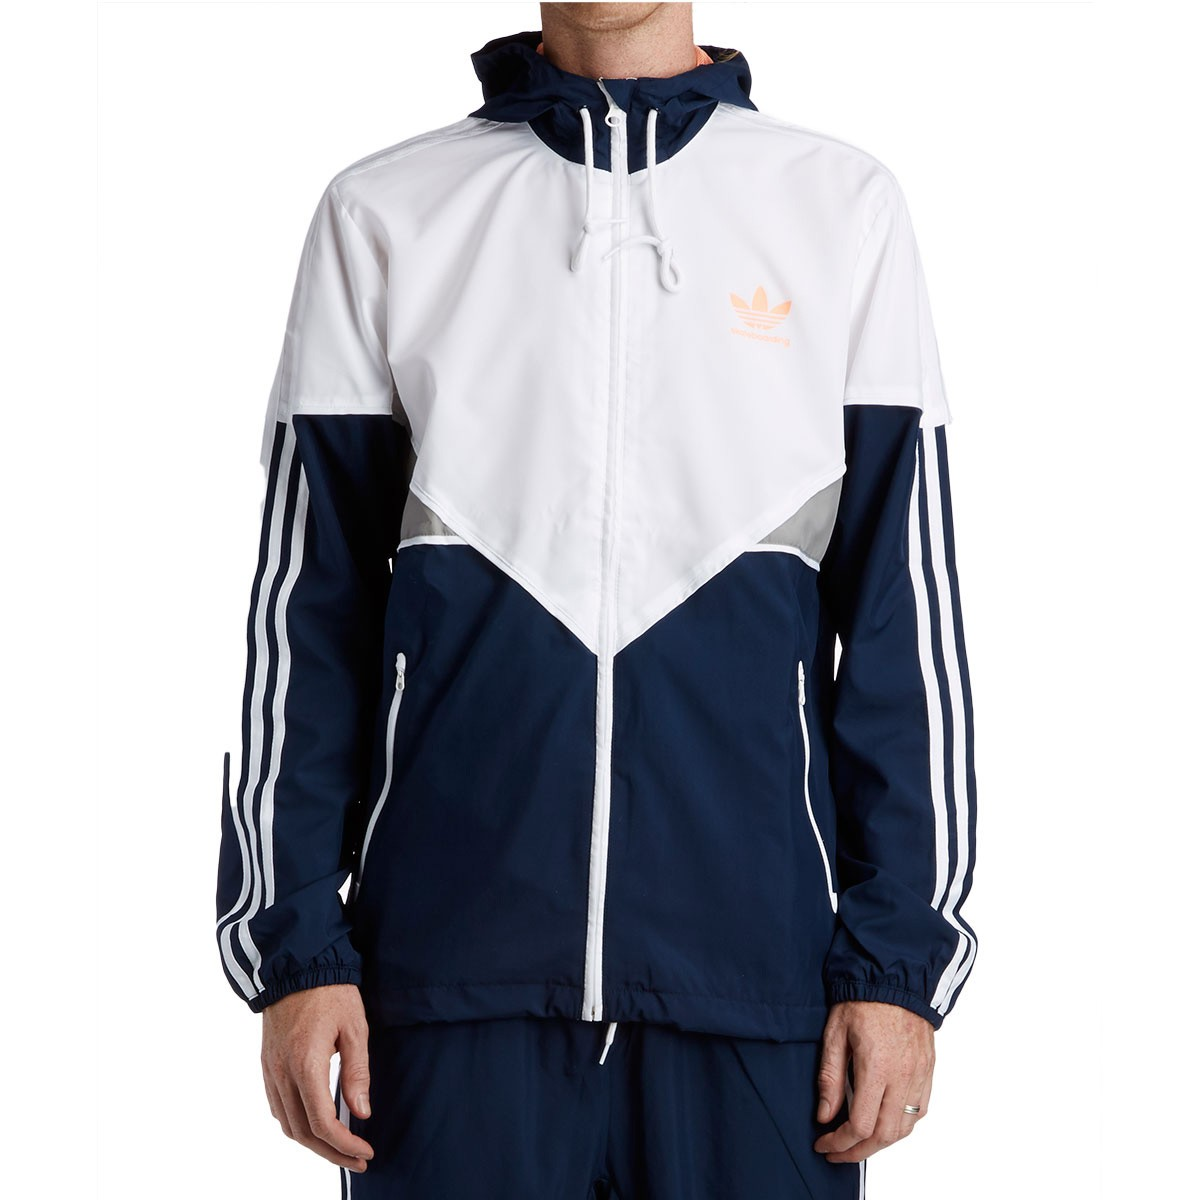 Adidas Premiere Windbreaker Jacket